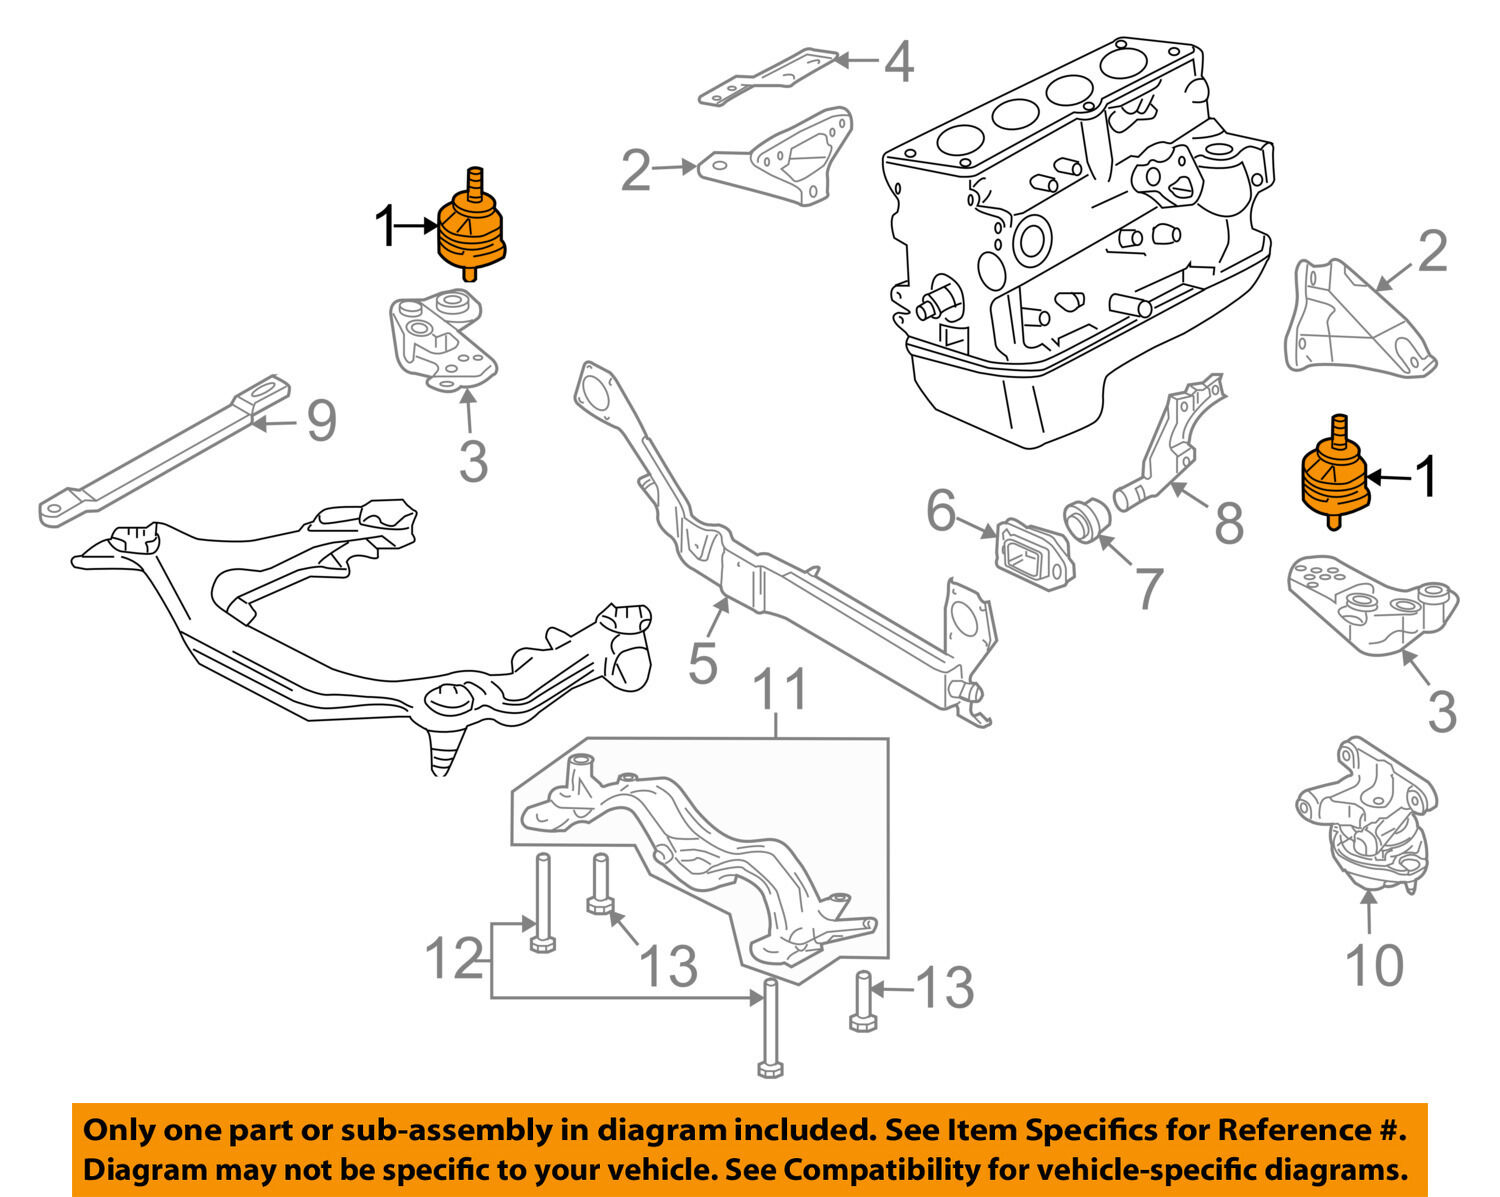 Audi Oem 05 08 A4 Quattro Engine Torque Strut Mount Right Side 2006 2 0t Diagram 1 Of 2only Available